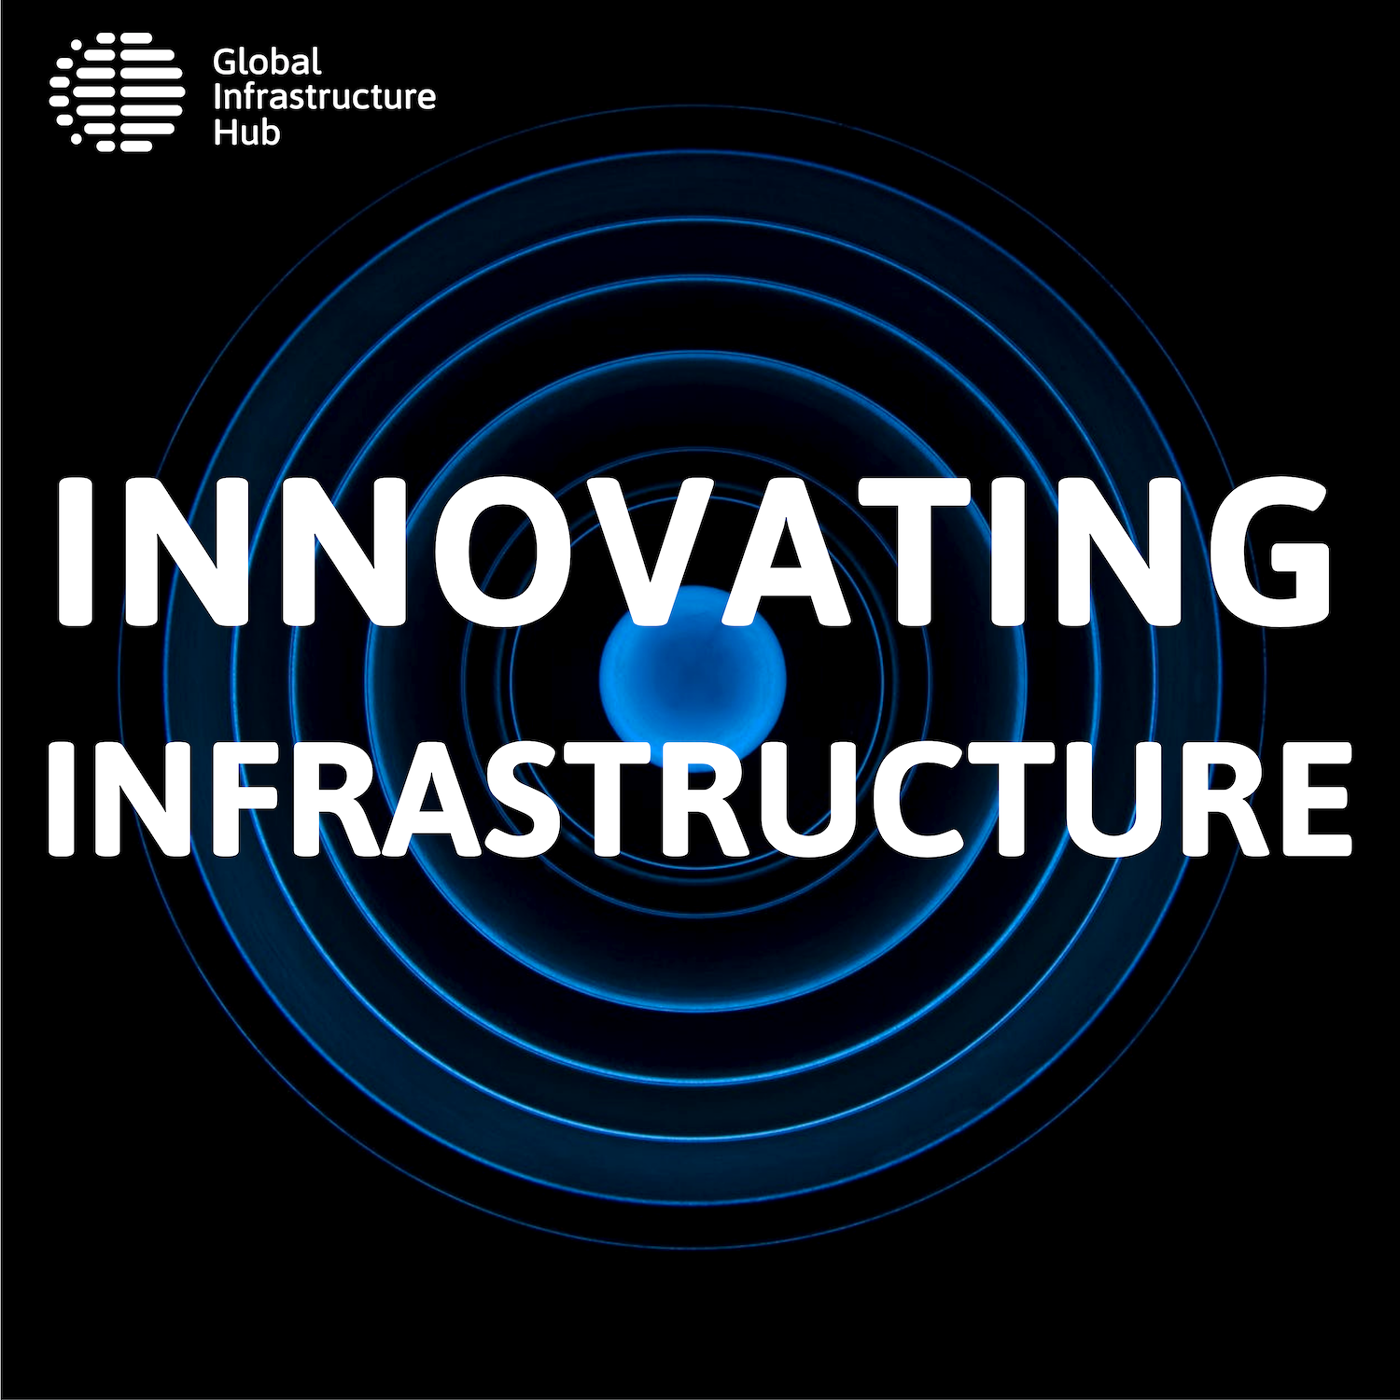 Giridhar Srinivasan - building a global database of infrastructure projects and performance